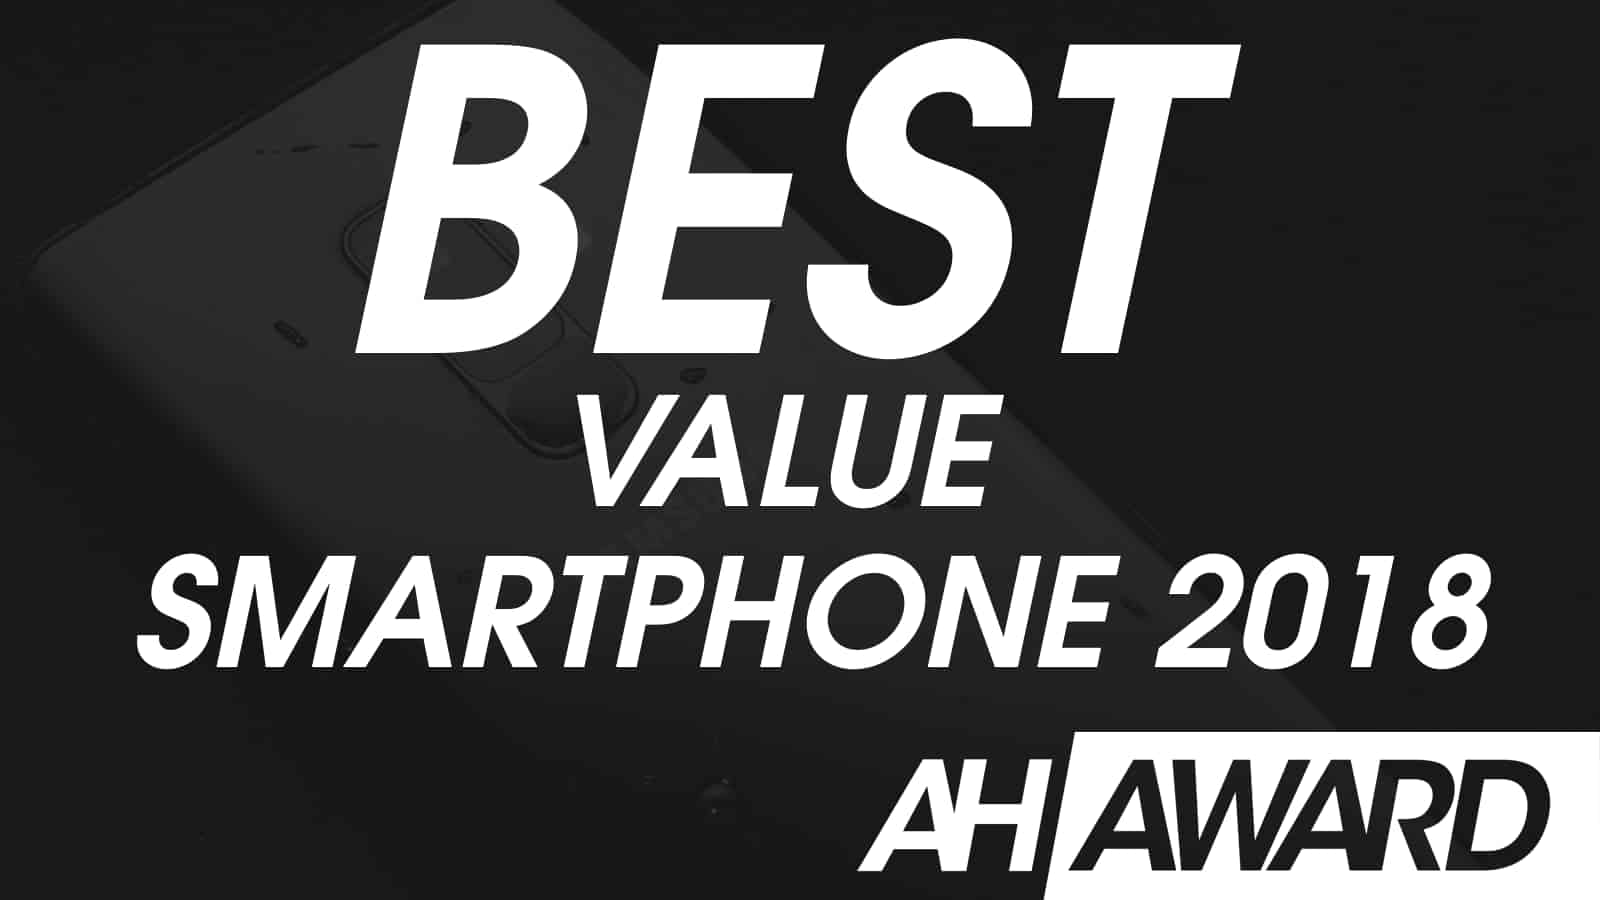 ANDROID HEADLINES AWARDS 2018 BEST VALUE SMARTPHONE